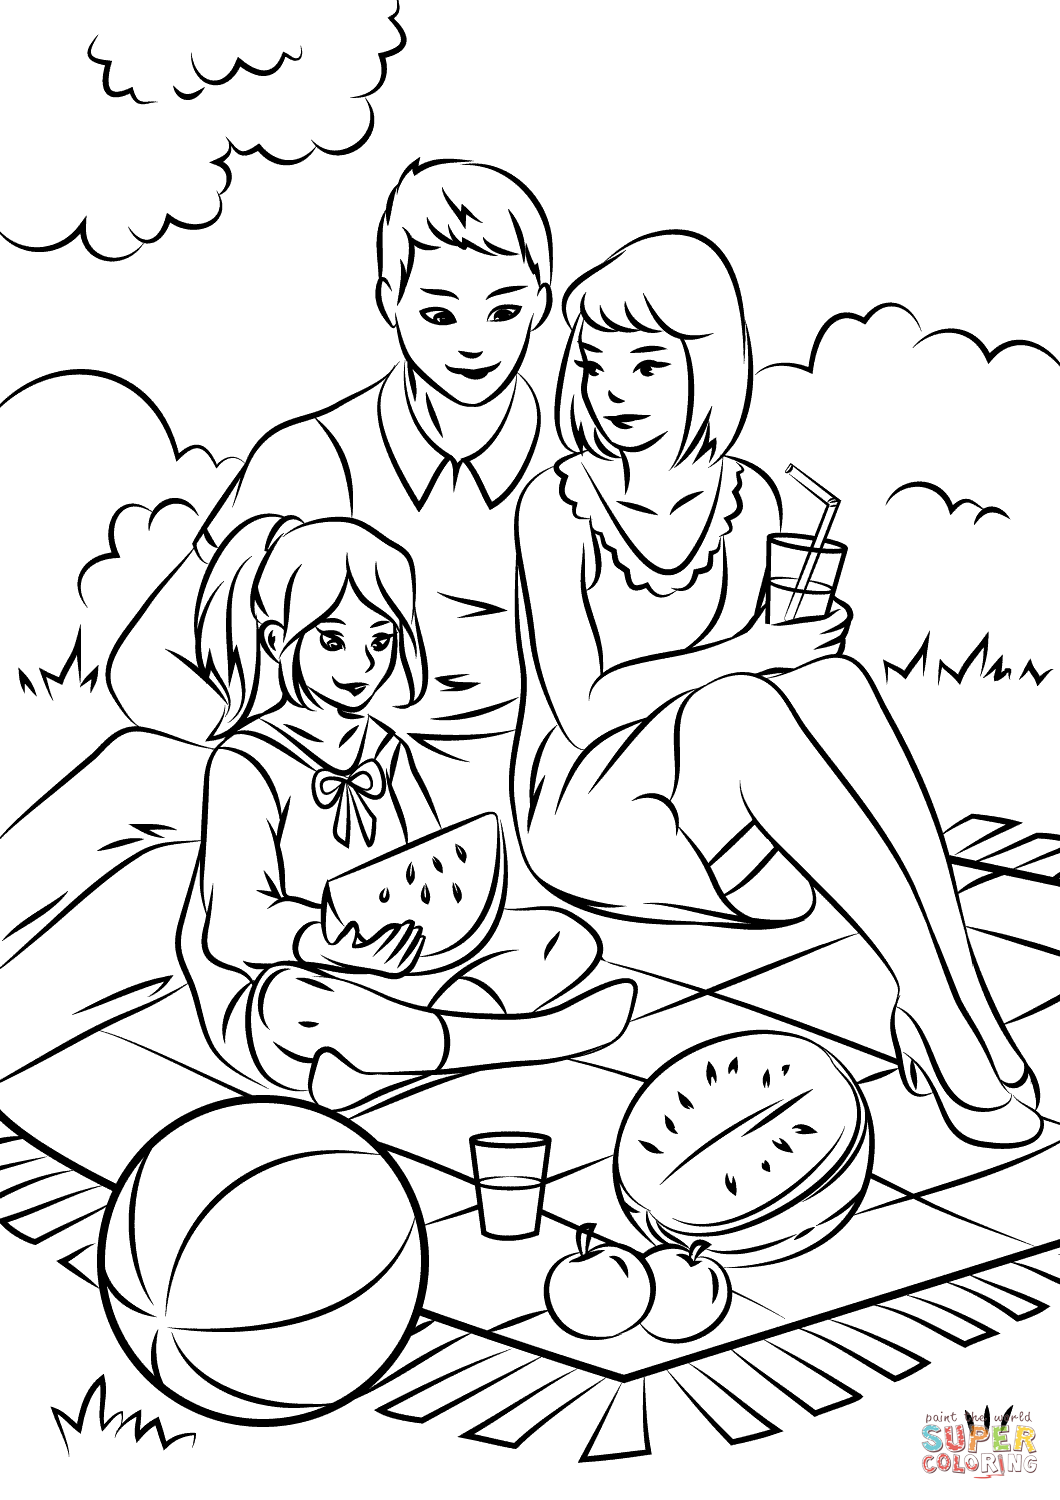 Picnic Coloring Download Picnic Coloring For Free